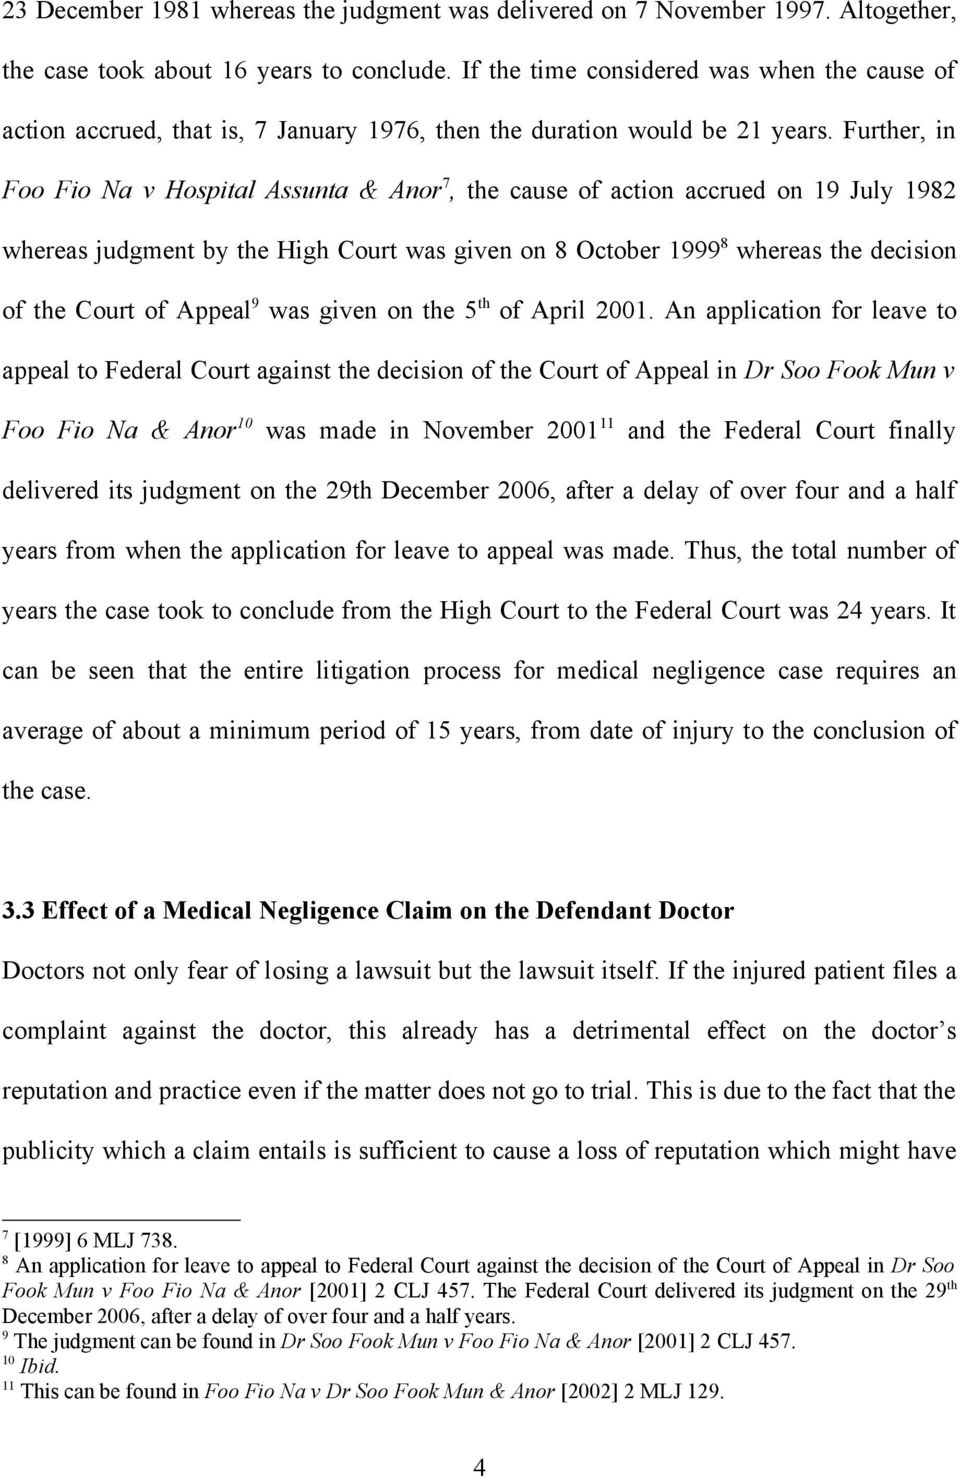 Further, in Foo Fio Na v Hospital Assunta & Anor 7, the cause of action accrued on 19 July 1982 whereas judgment by the High Court was given on 8 October 1999 8 whereas the decision of the Court of